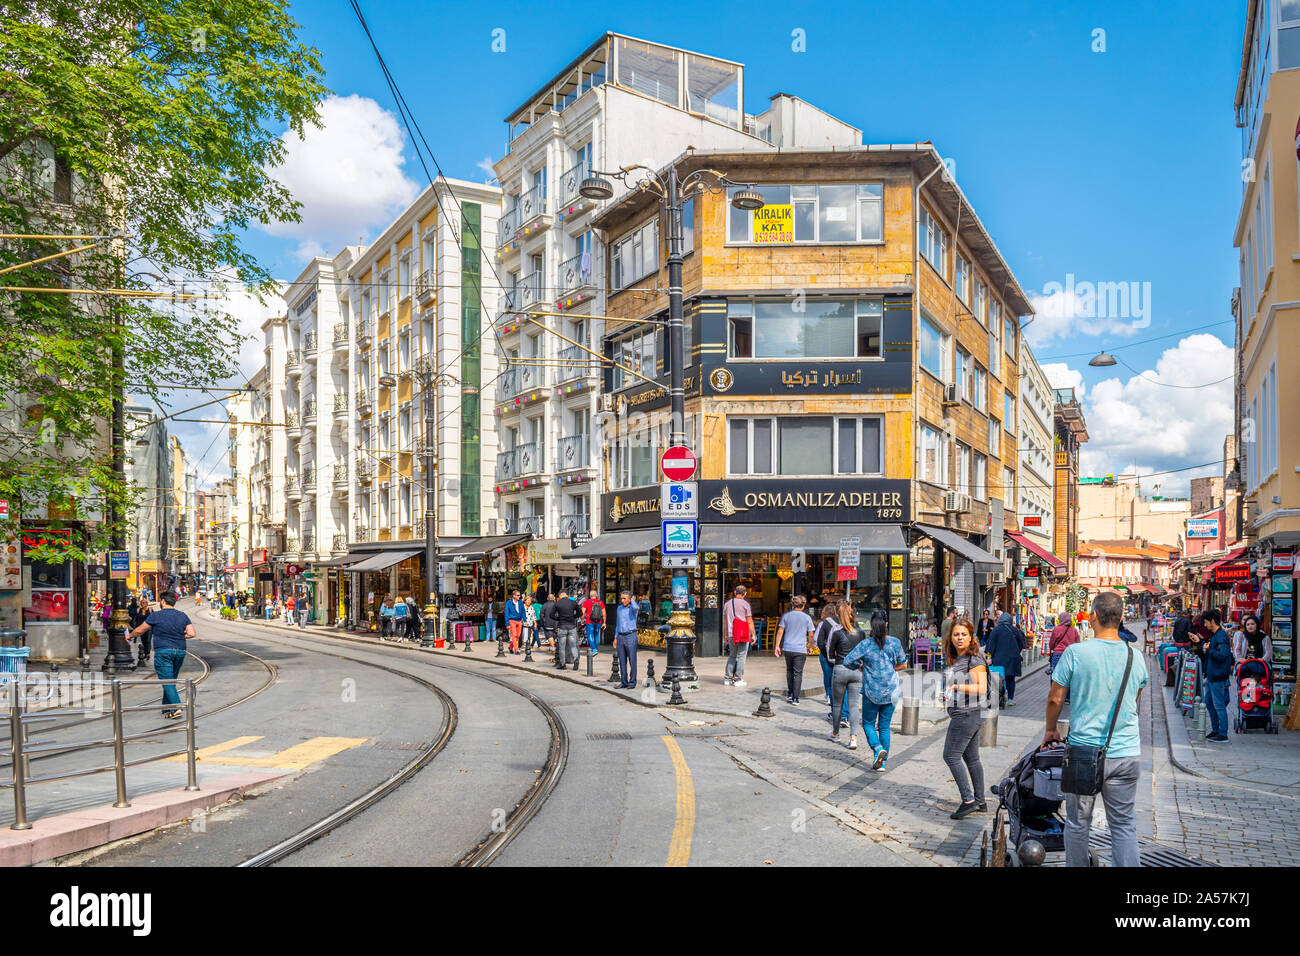 Tourists and local Turks enjoy a summer day in the Sultanahmet district of shops and cafes in Istanbul, Turkey. Stock Photo